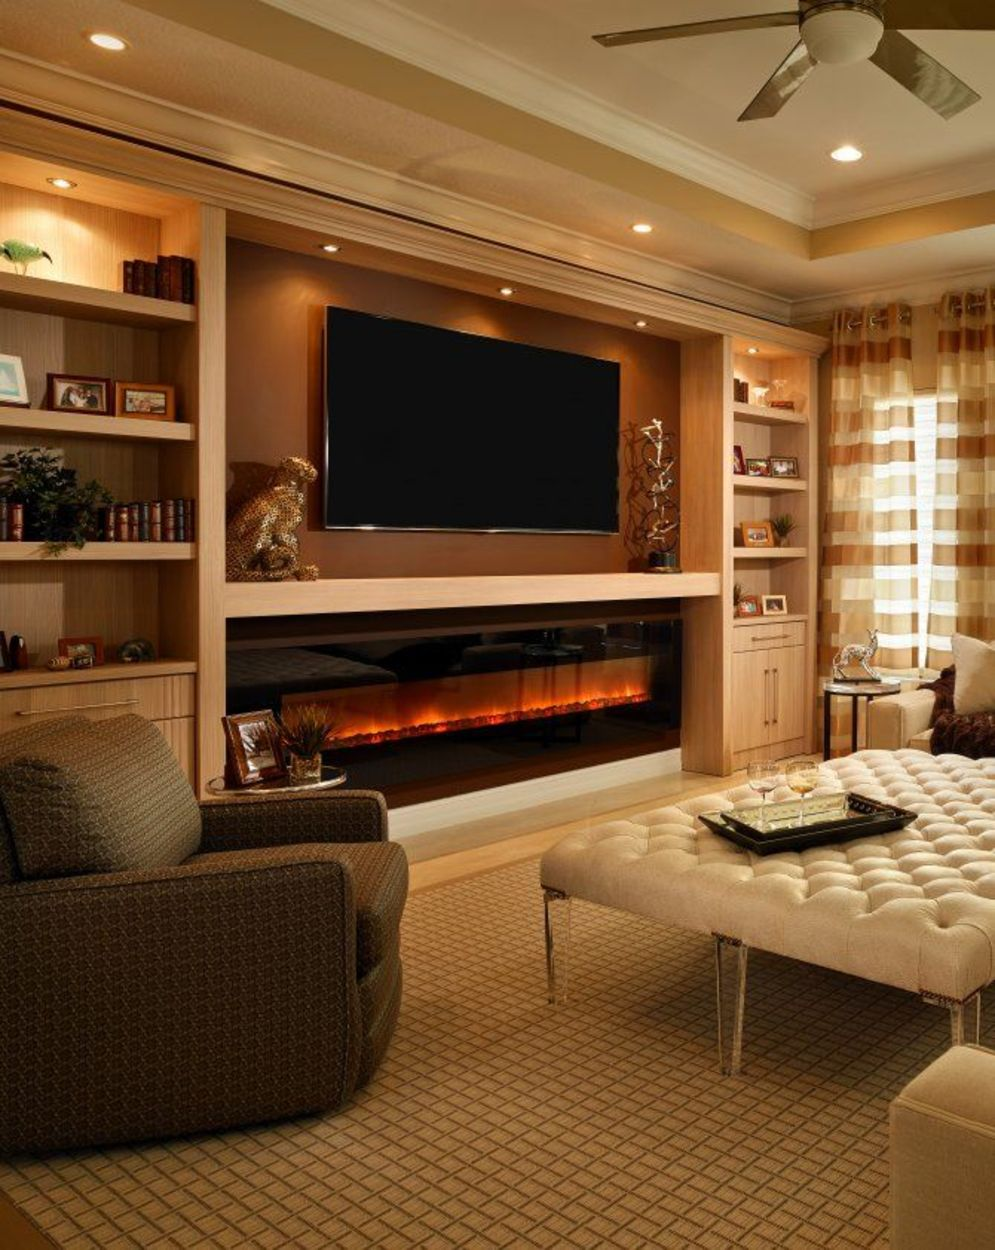 Modern living room with electric fireplace enclosed under TV wall Image 32